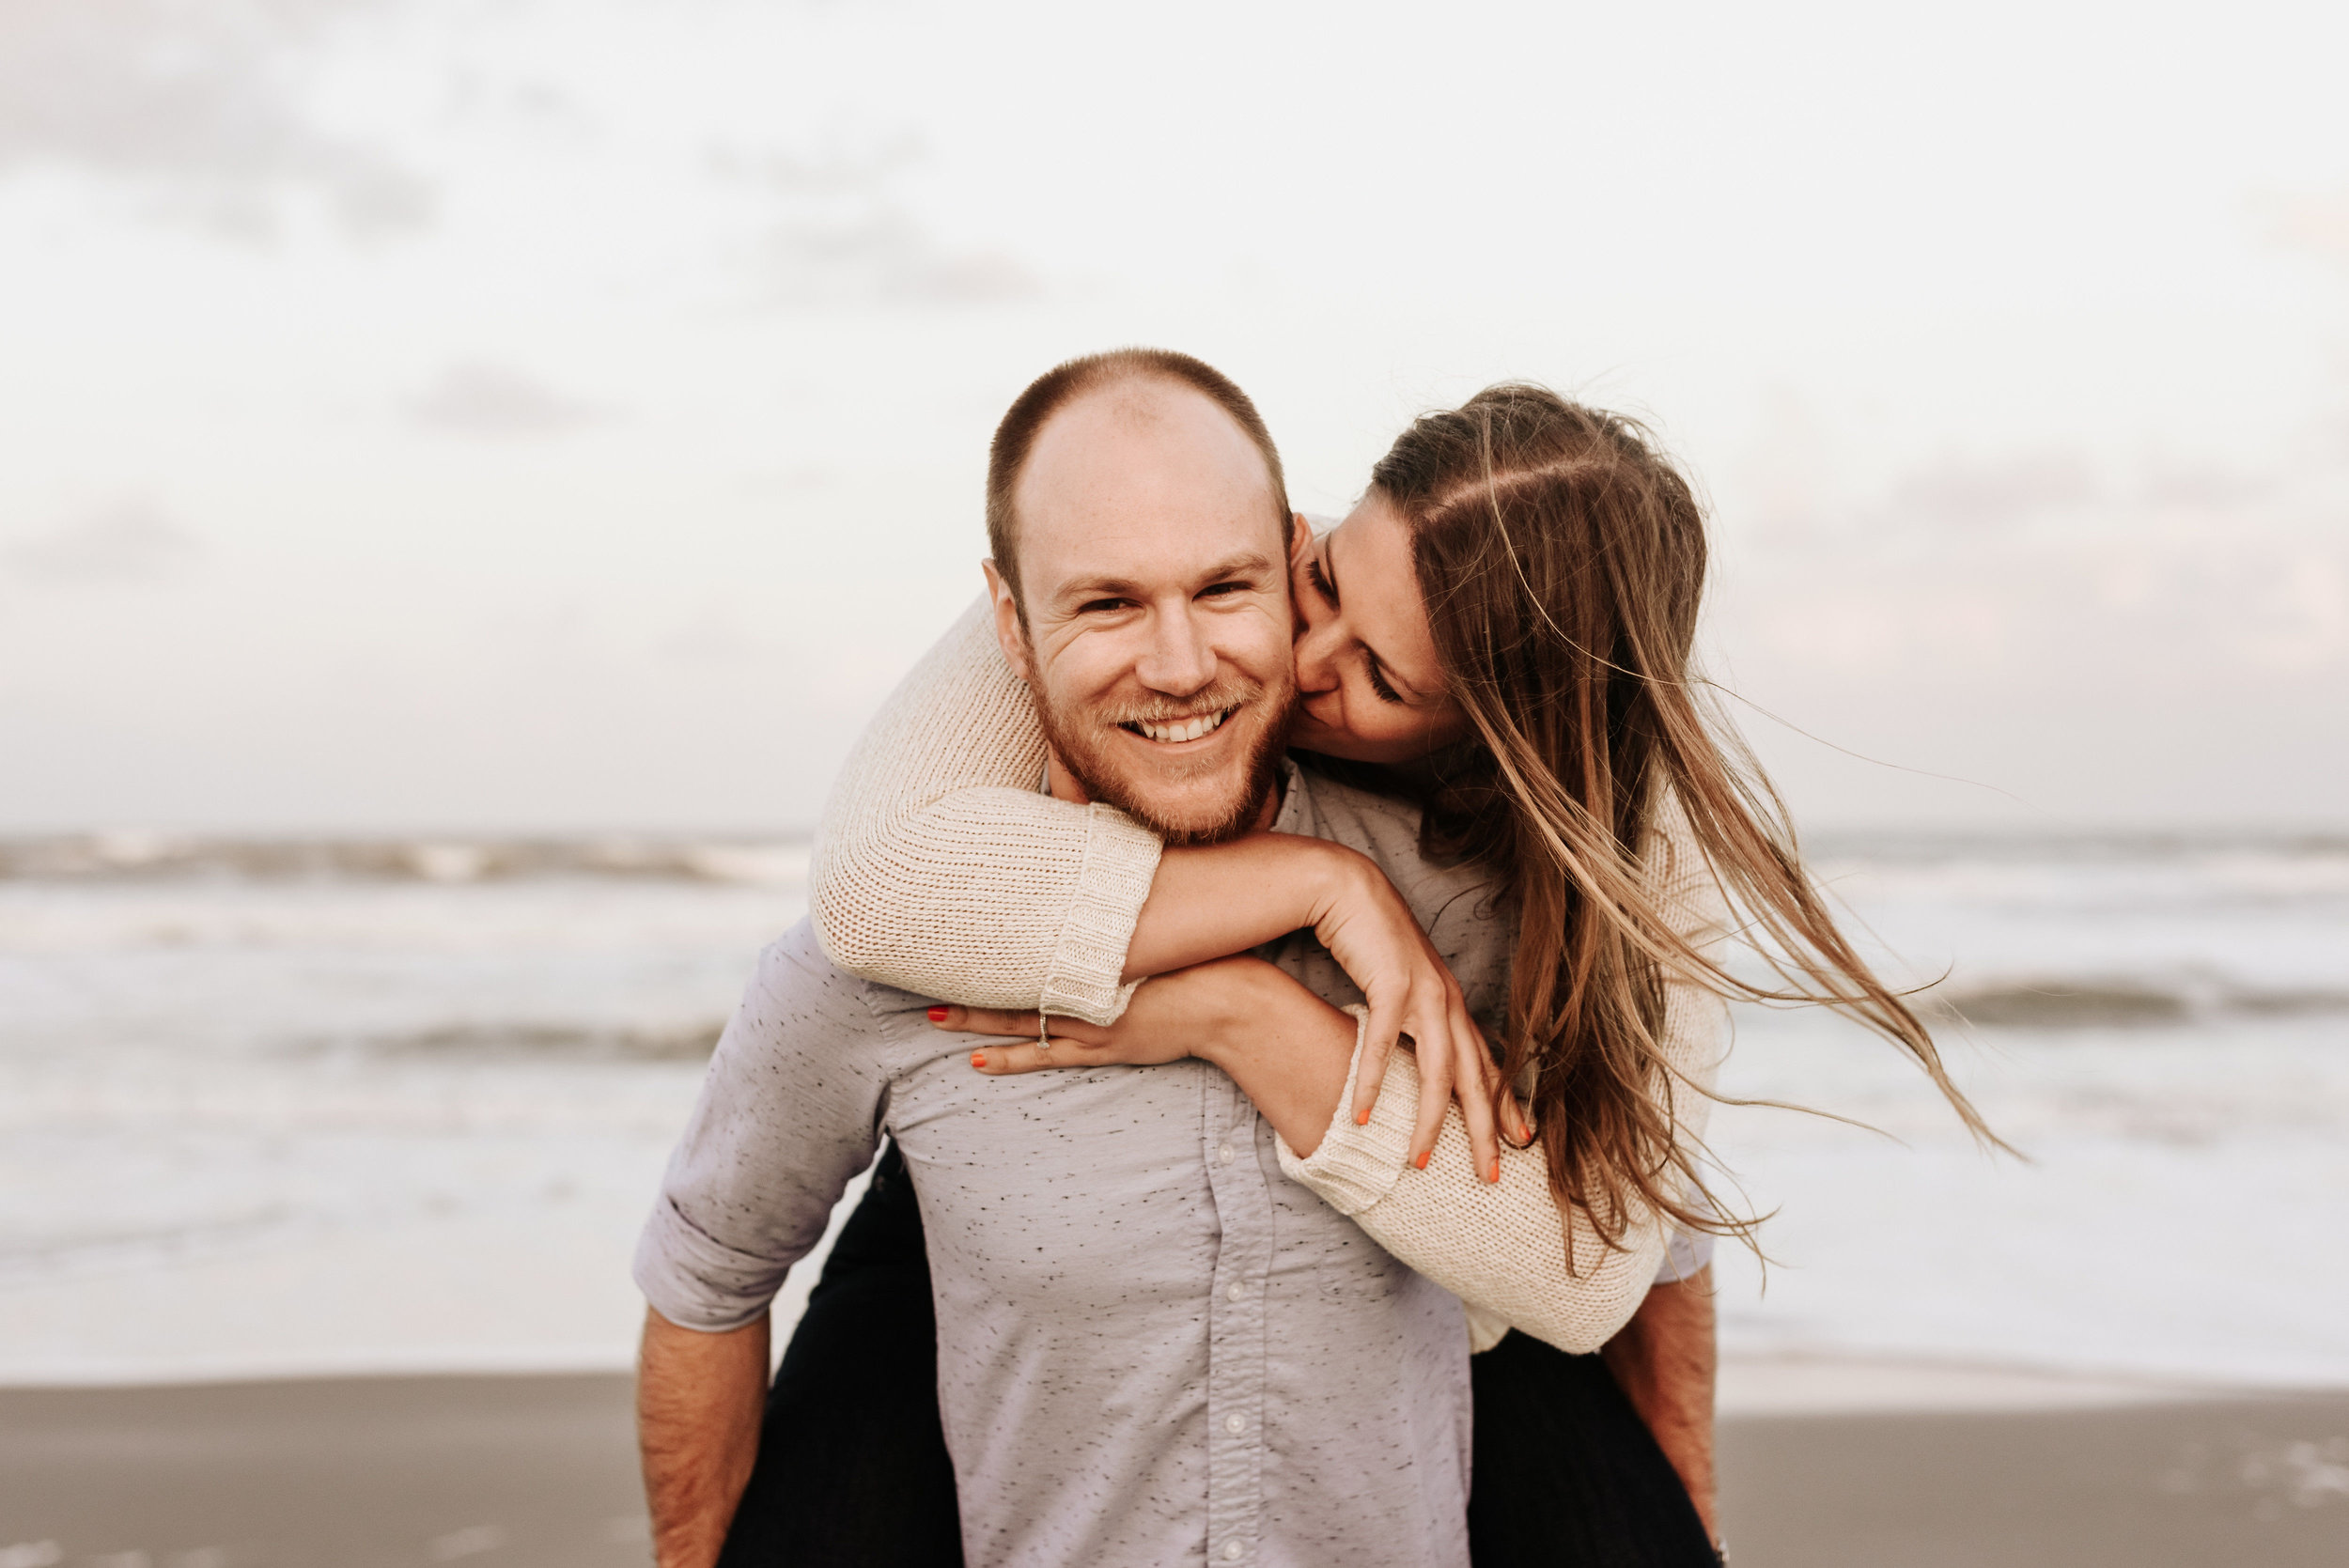 Courtney_Luke_Wedding_Engagement_Session_Cocoa_Beach_Florida_Photography_by_V_4846.jpg